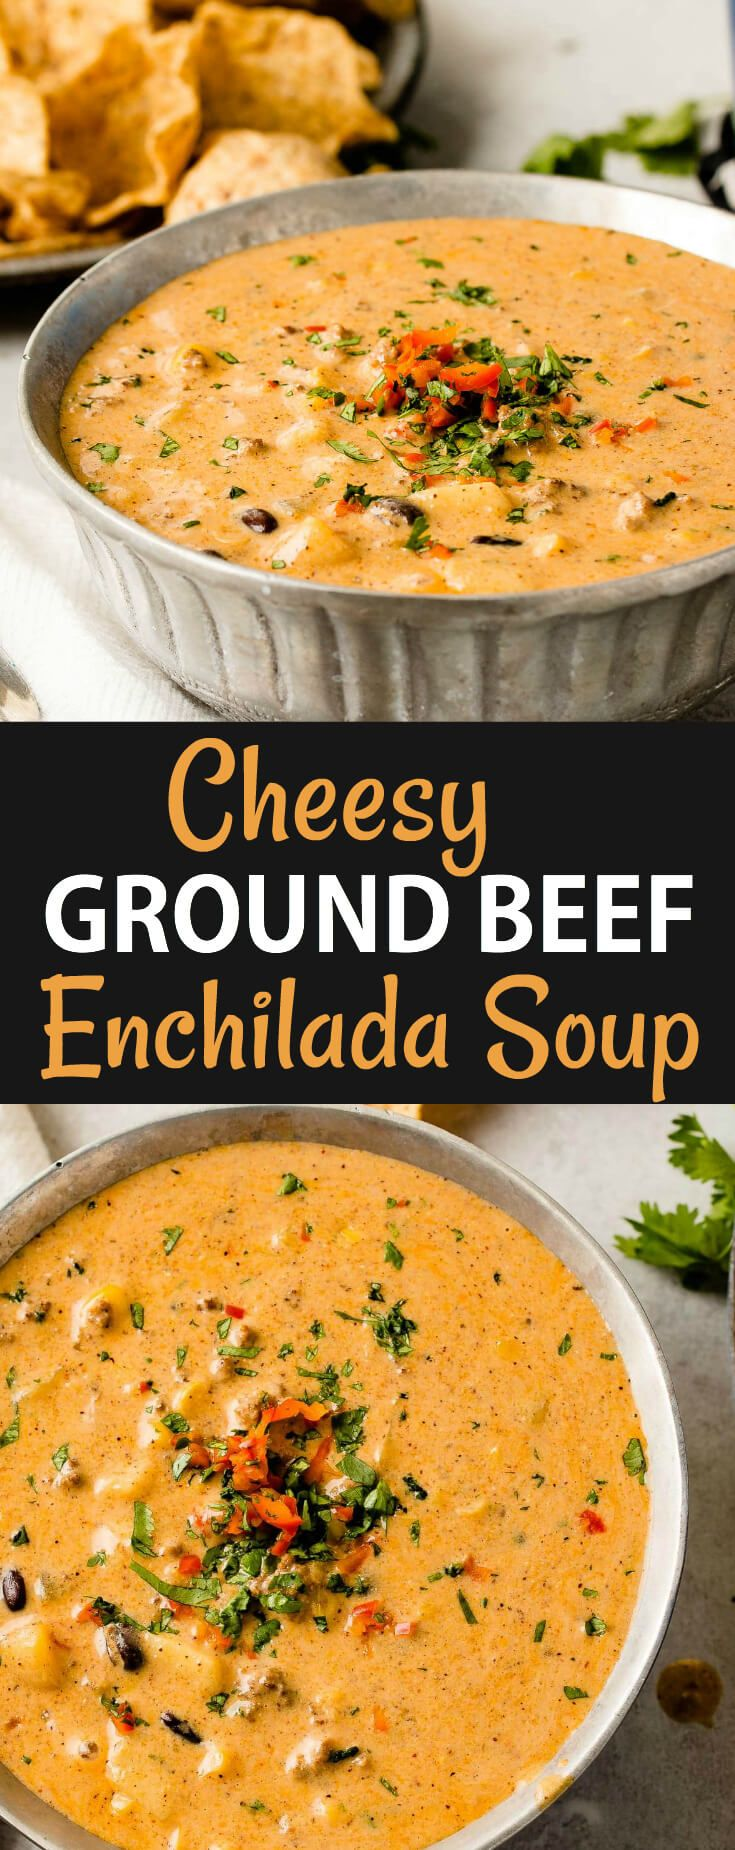 Cheesy Ground Beef Enchilada Chili [+ Video] - Oh Sweet Basil